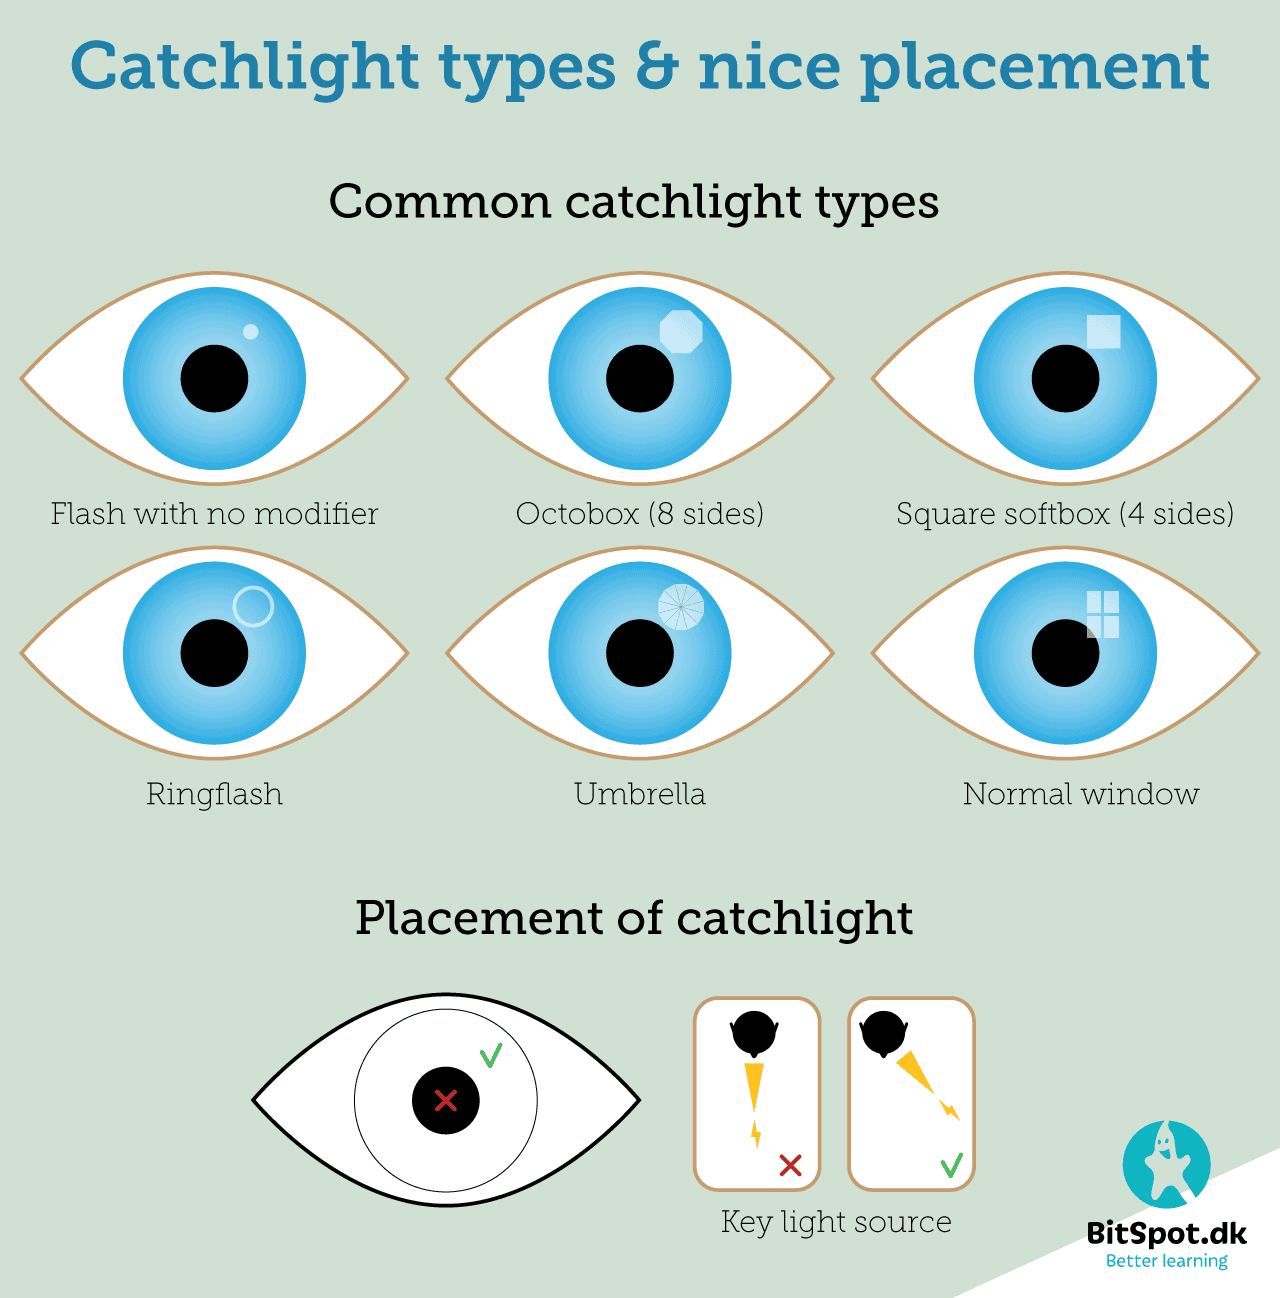 catchlight-infographic-bitspot-know-how-series